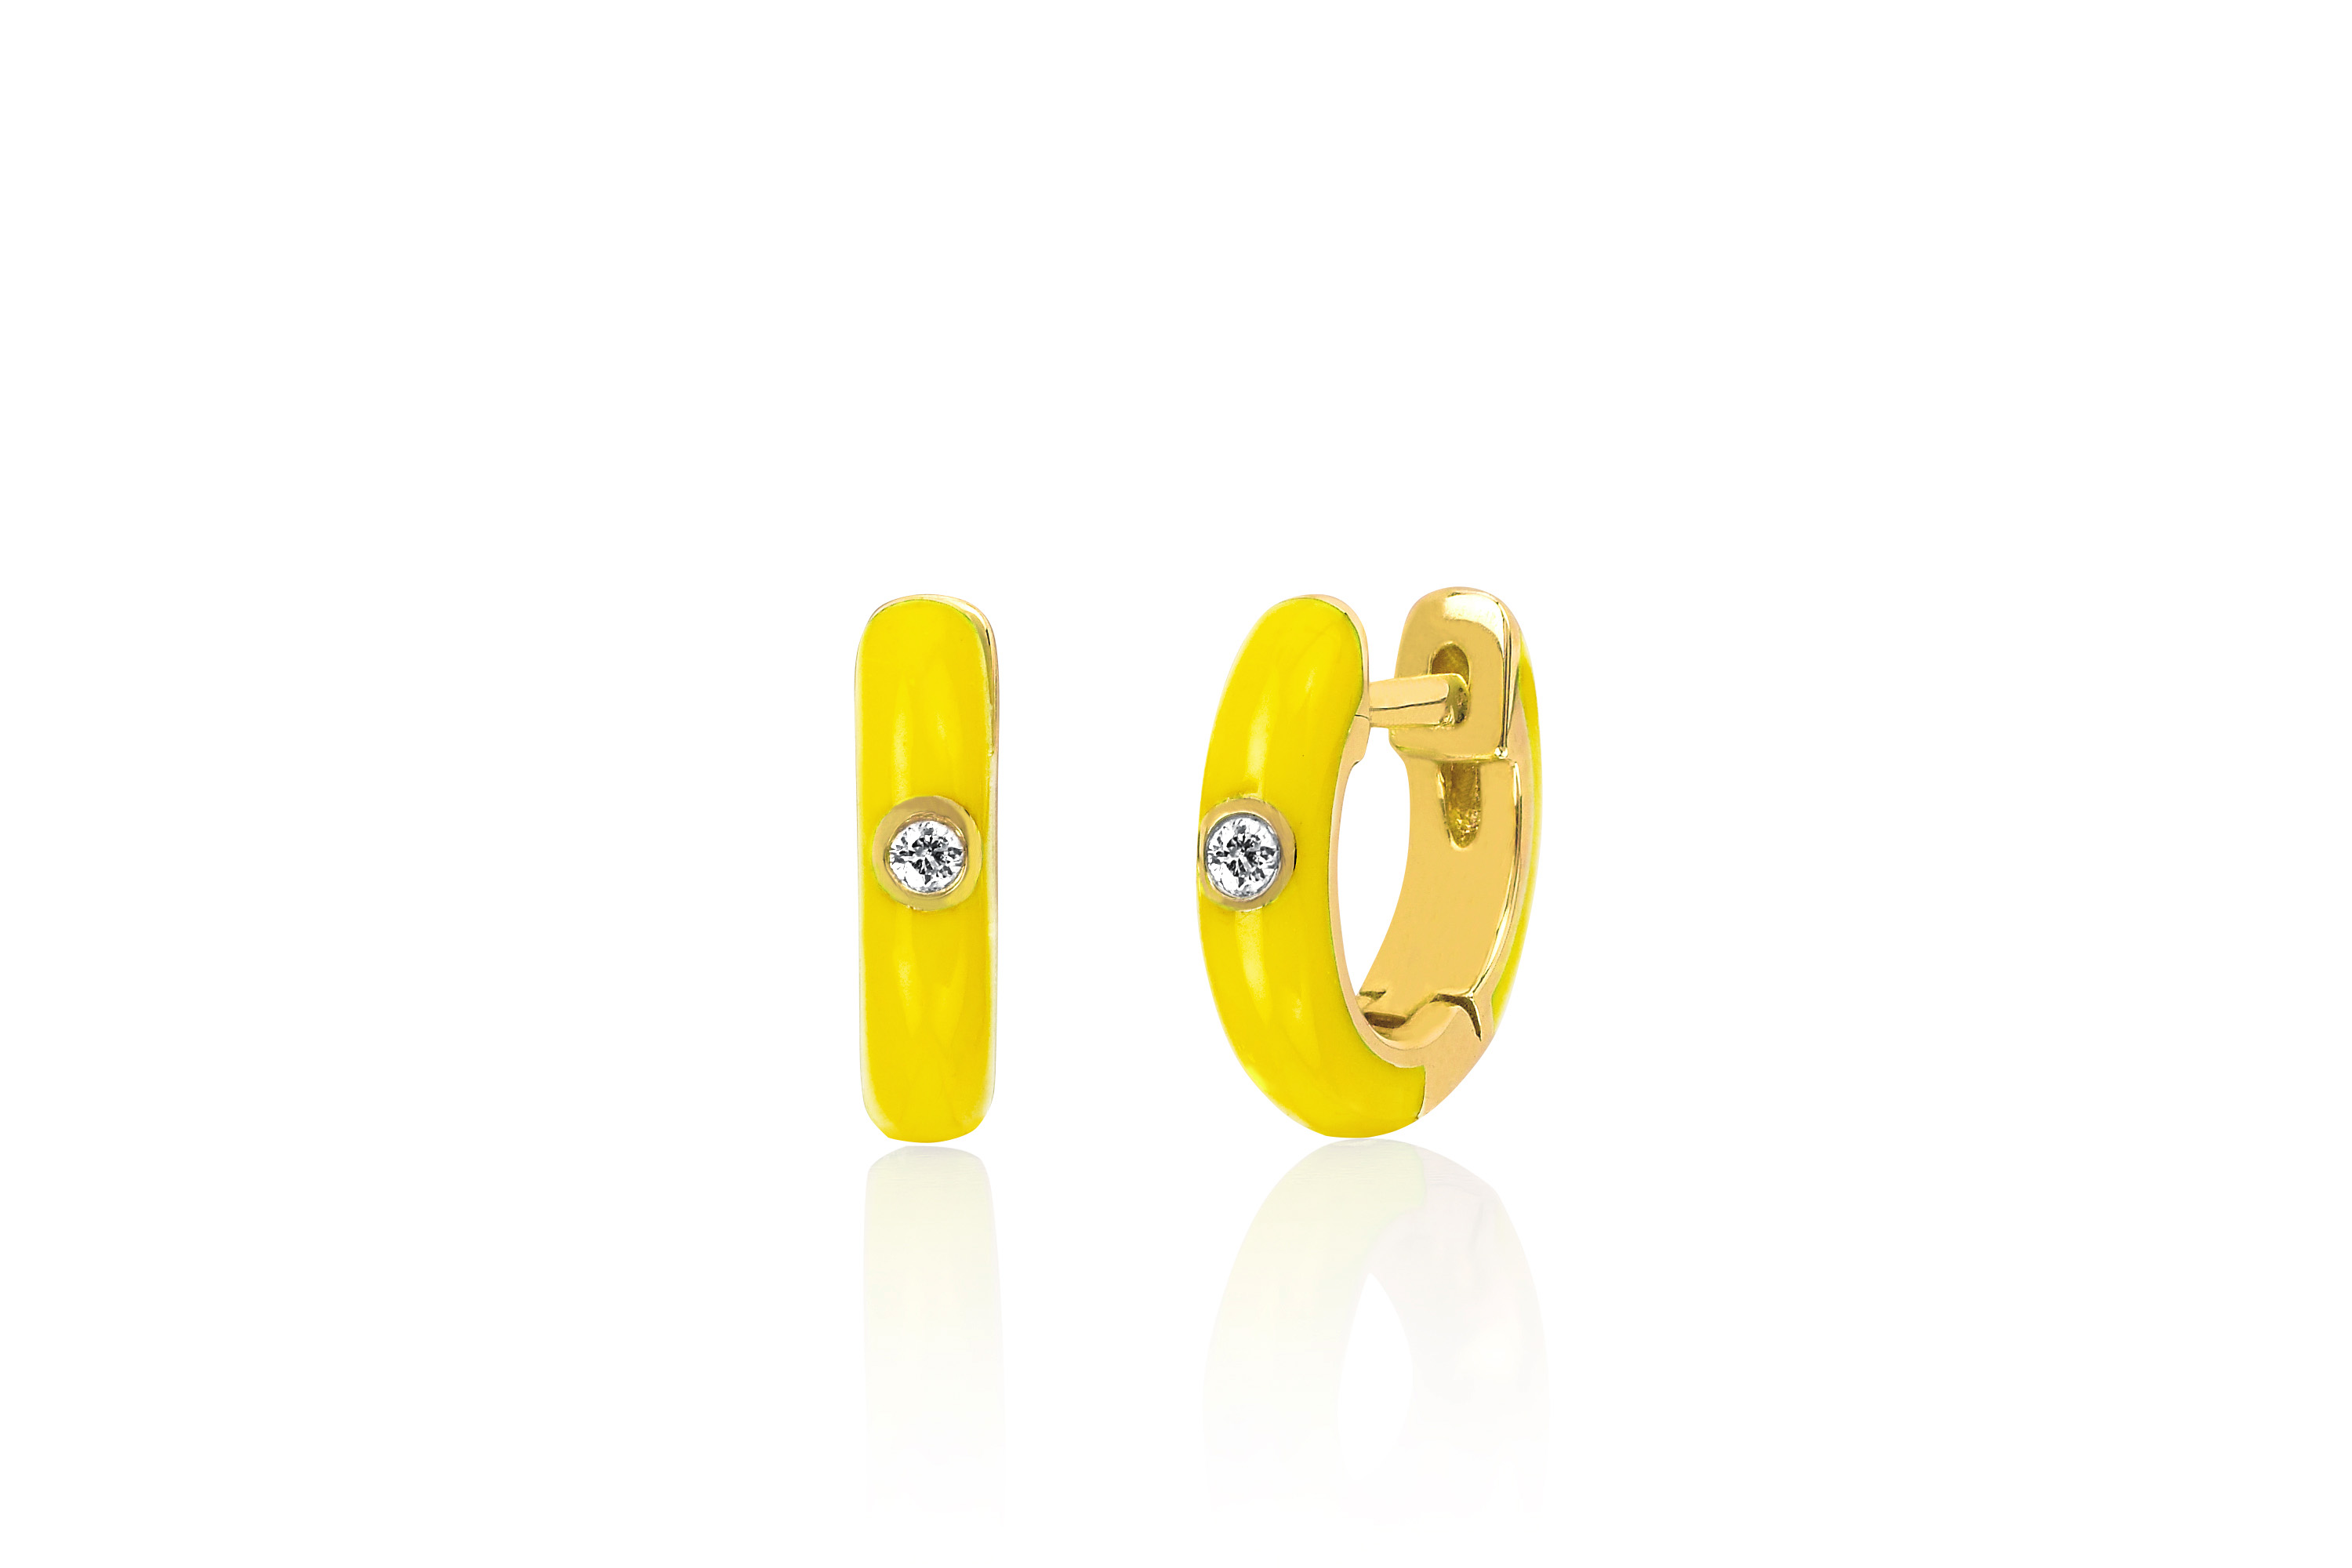 0e4083ff2b SoulCycle x EF Collection Enamel Huggie Earrings - Online Only - SoulCycle  Shop